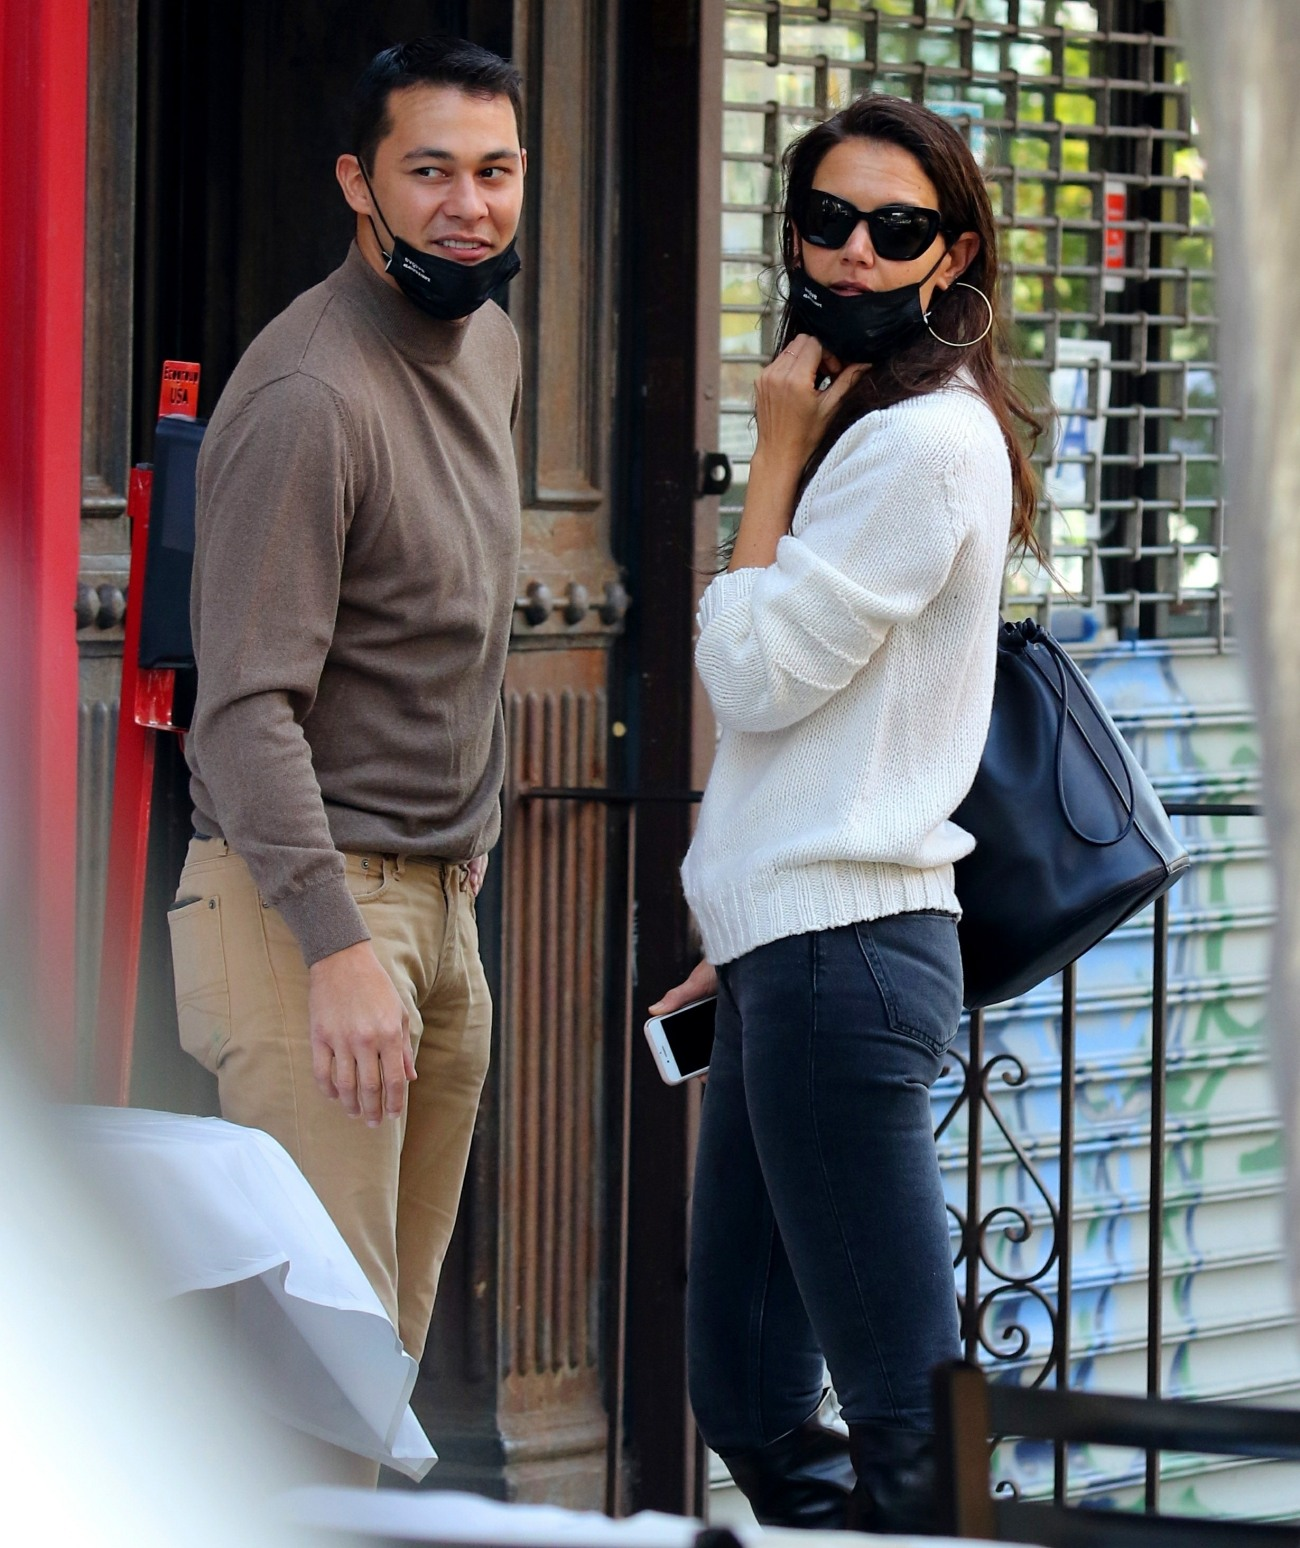 Katie Holmes and Emilio Vitolo are all smiles as they continue another steamy make-out session outside his restaurant in NYC